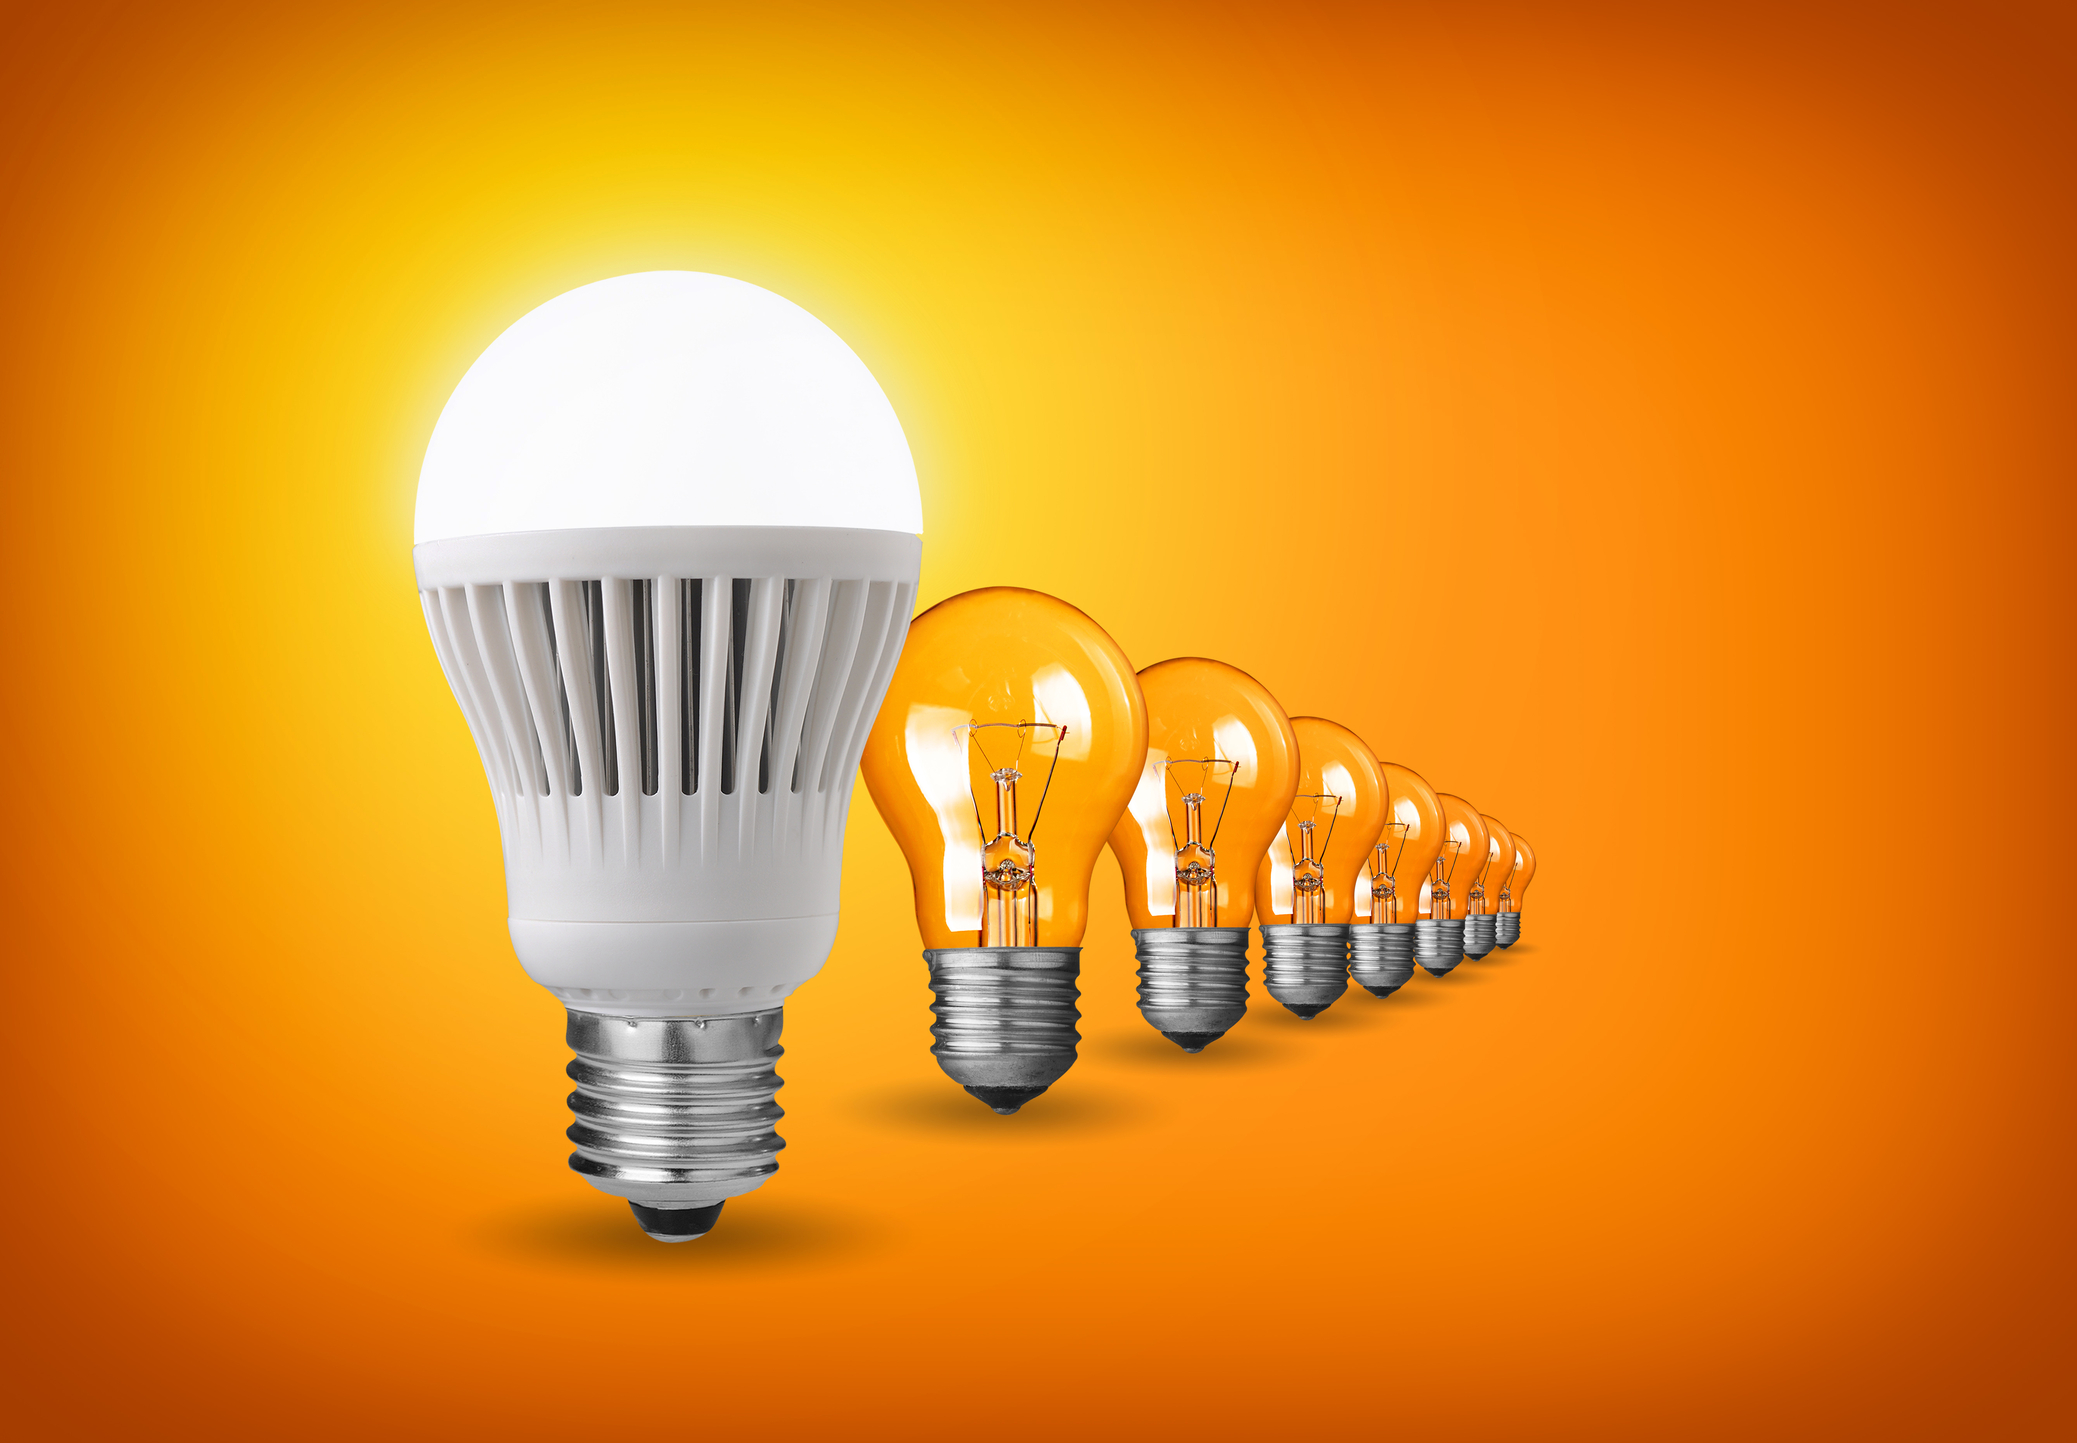 Howling Shining Light On Led Bulbs Cost Less Lighting Linkedin Cost Less Lighting Inc Address houzz-03 Cost Less Lighting